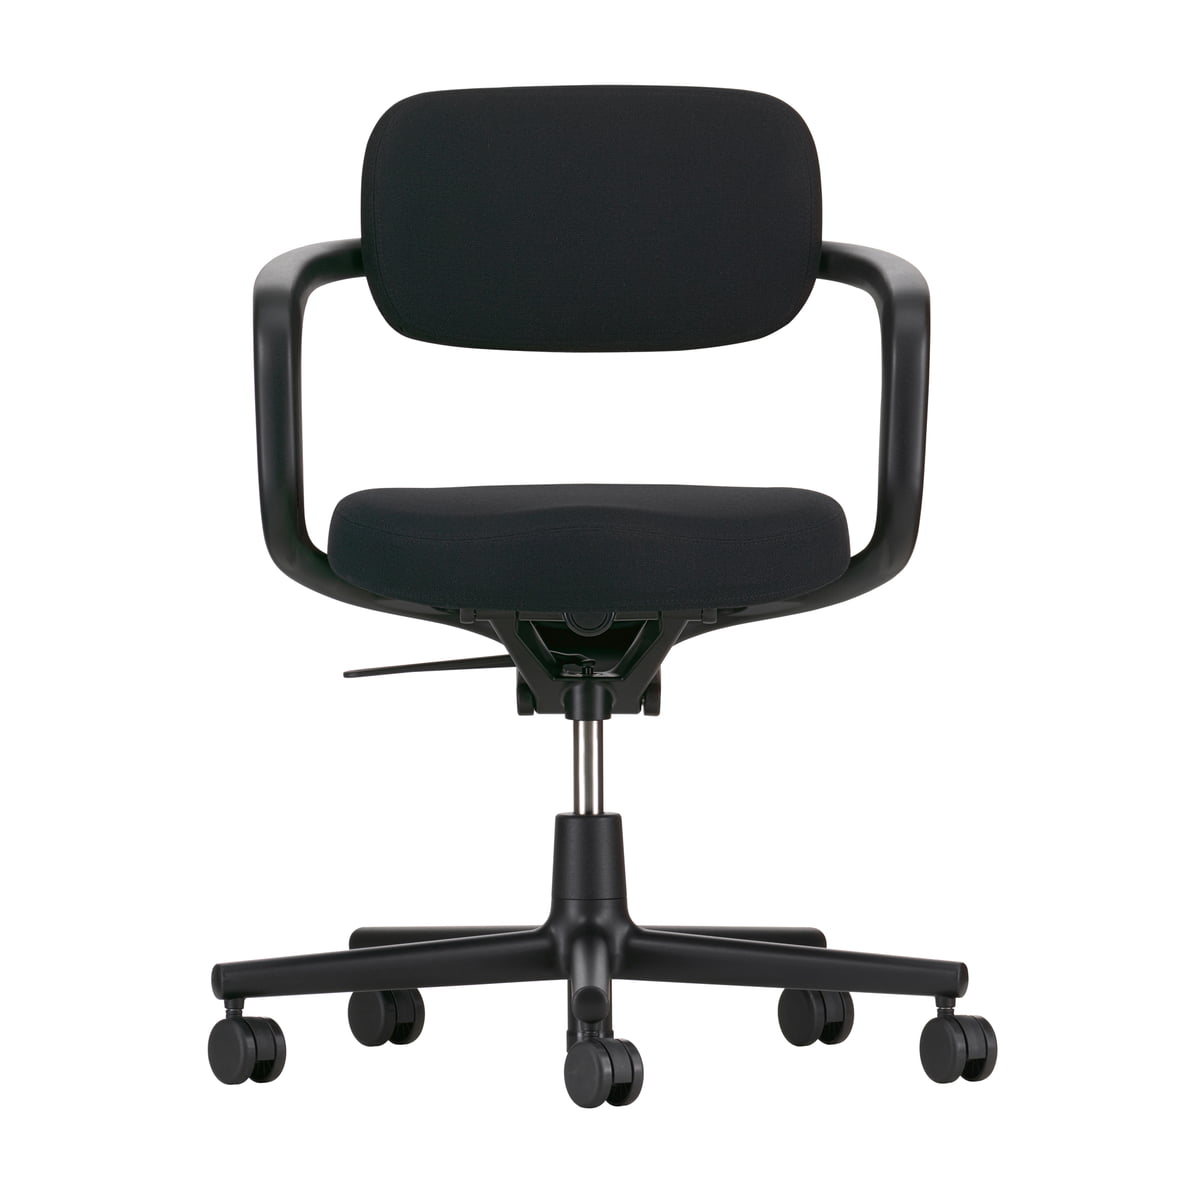 the allstar office chair by vitra. Black Bedroom Furniture Sets. Home Design Ideas